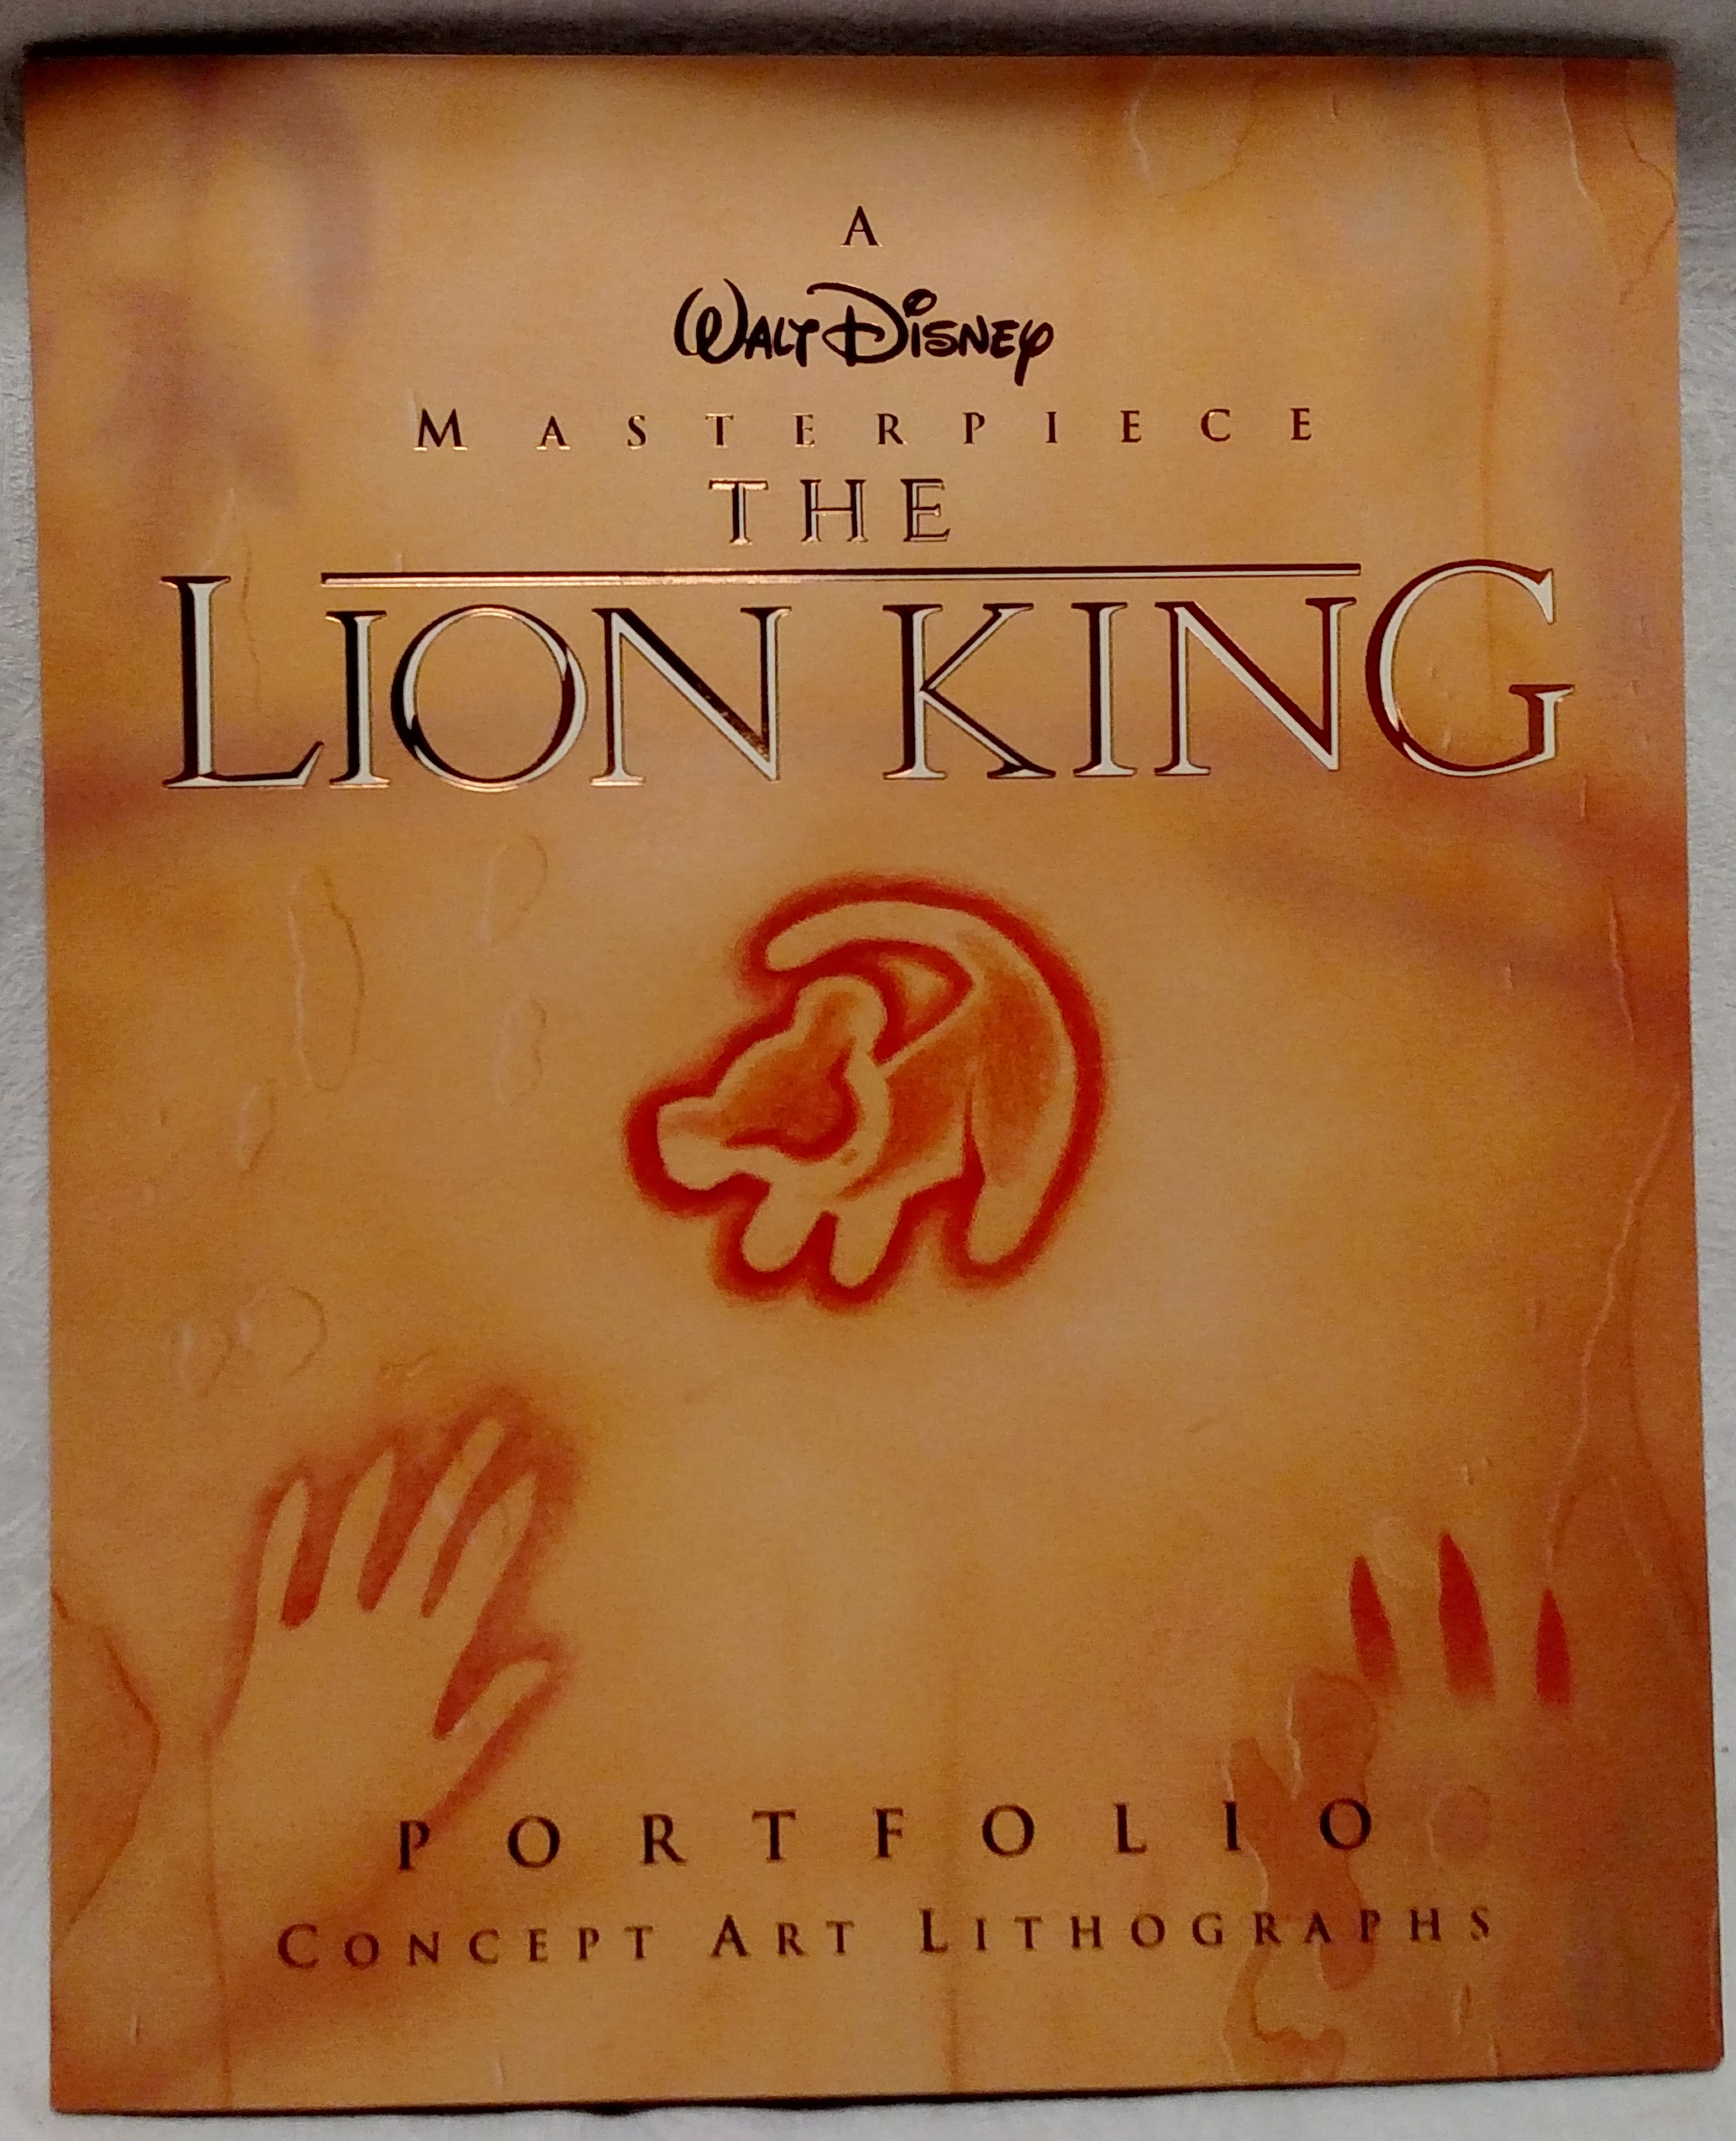 The Lion King Laserdisc - Lithograph Sleeve Front